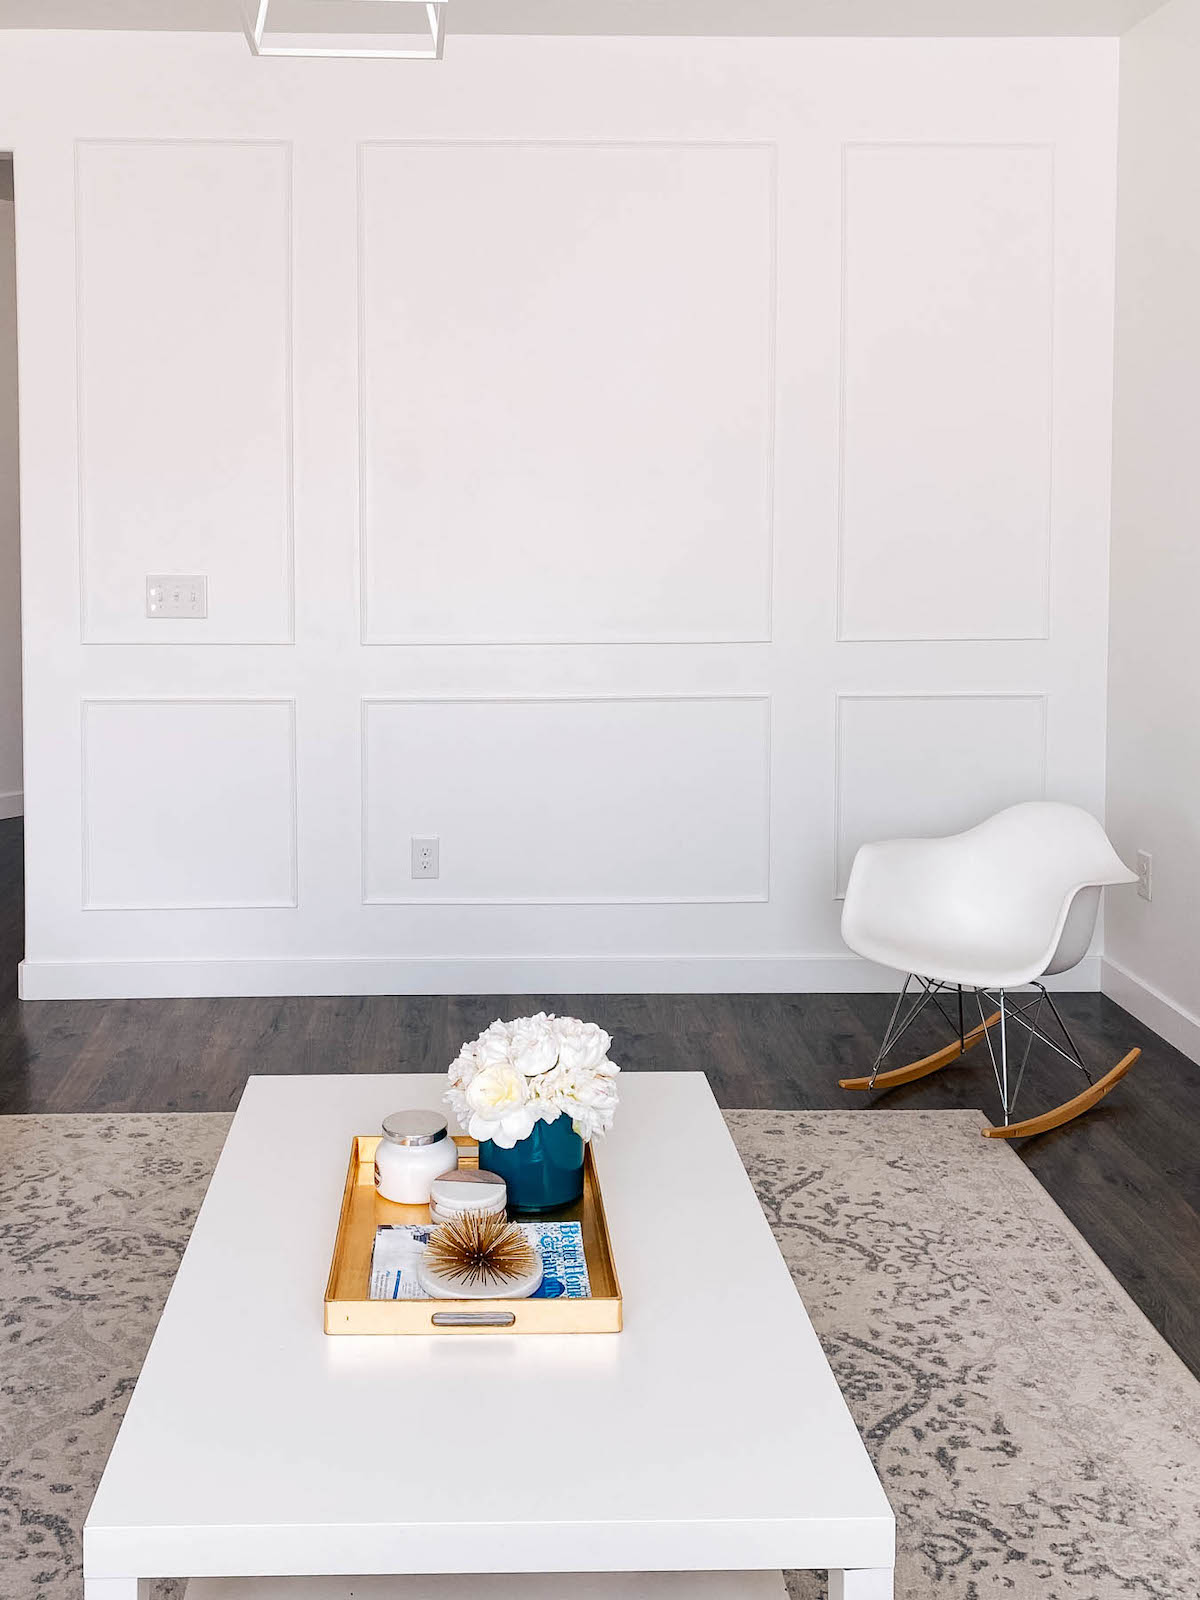 White wall with picture frame moulding and white chair, coffee table, and rug nearby.